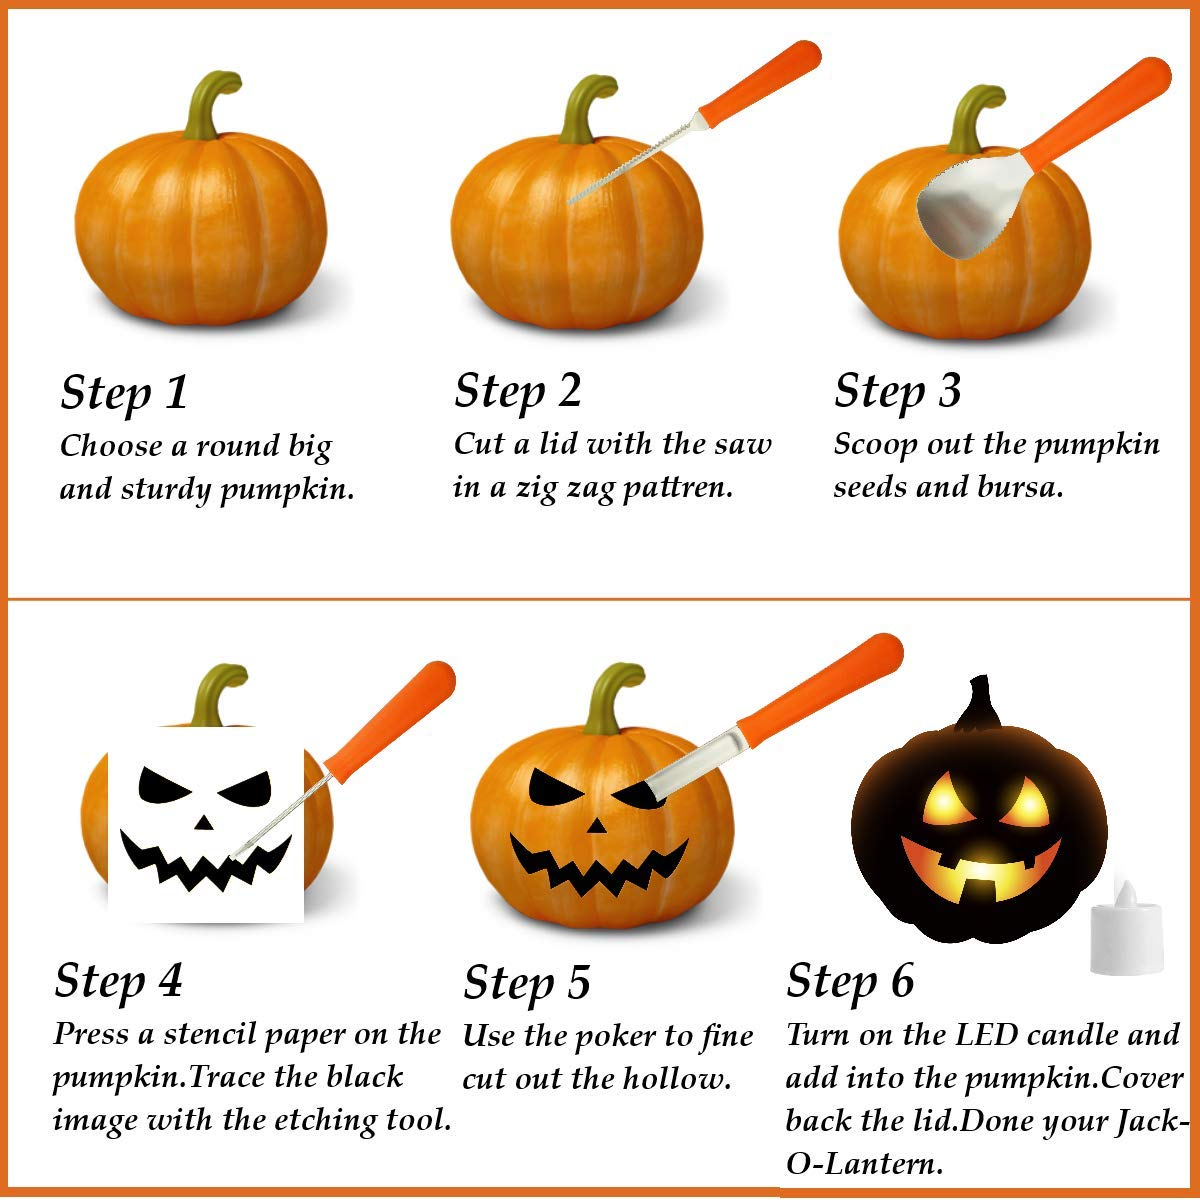 Professional Pumpkin Carving Tools Kit【Set of 4】Premium Heavy Duty Stainless Steel Knives for Easily Sculpt Halloween Jack-O-Lanterns with【Many Pumpkin Carved Stencils/Patterns/Templates】 by AUXIN (Image #2)